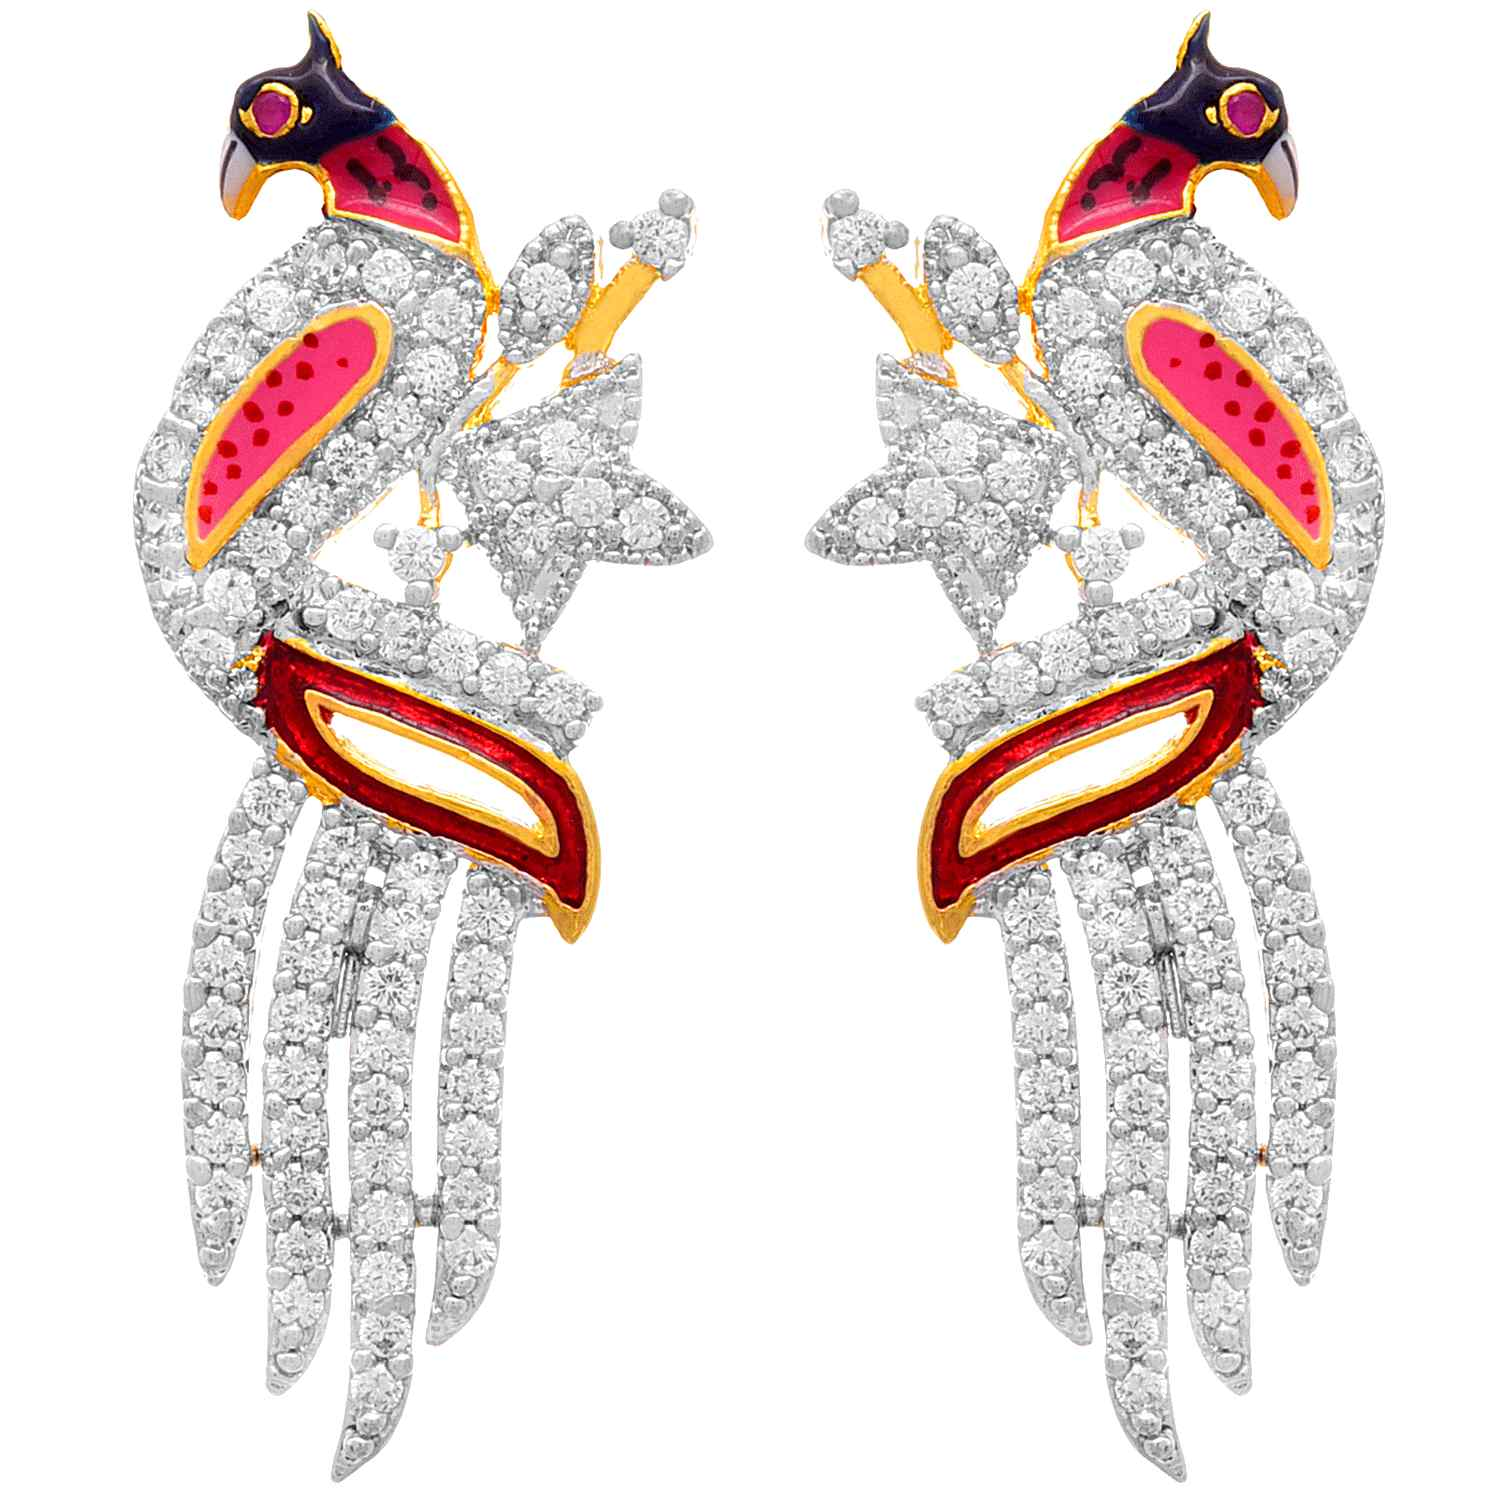 JFL - Traditional Ethnic Fusion One Gram Gold Plated Cz Cubic Zircon American Diamond Meenakari Peacock Designer Pendant Set with Earring for Women & Girls